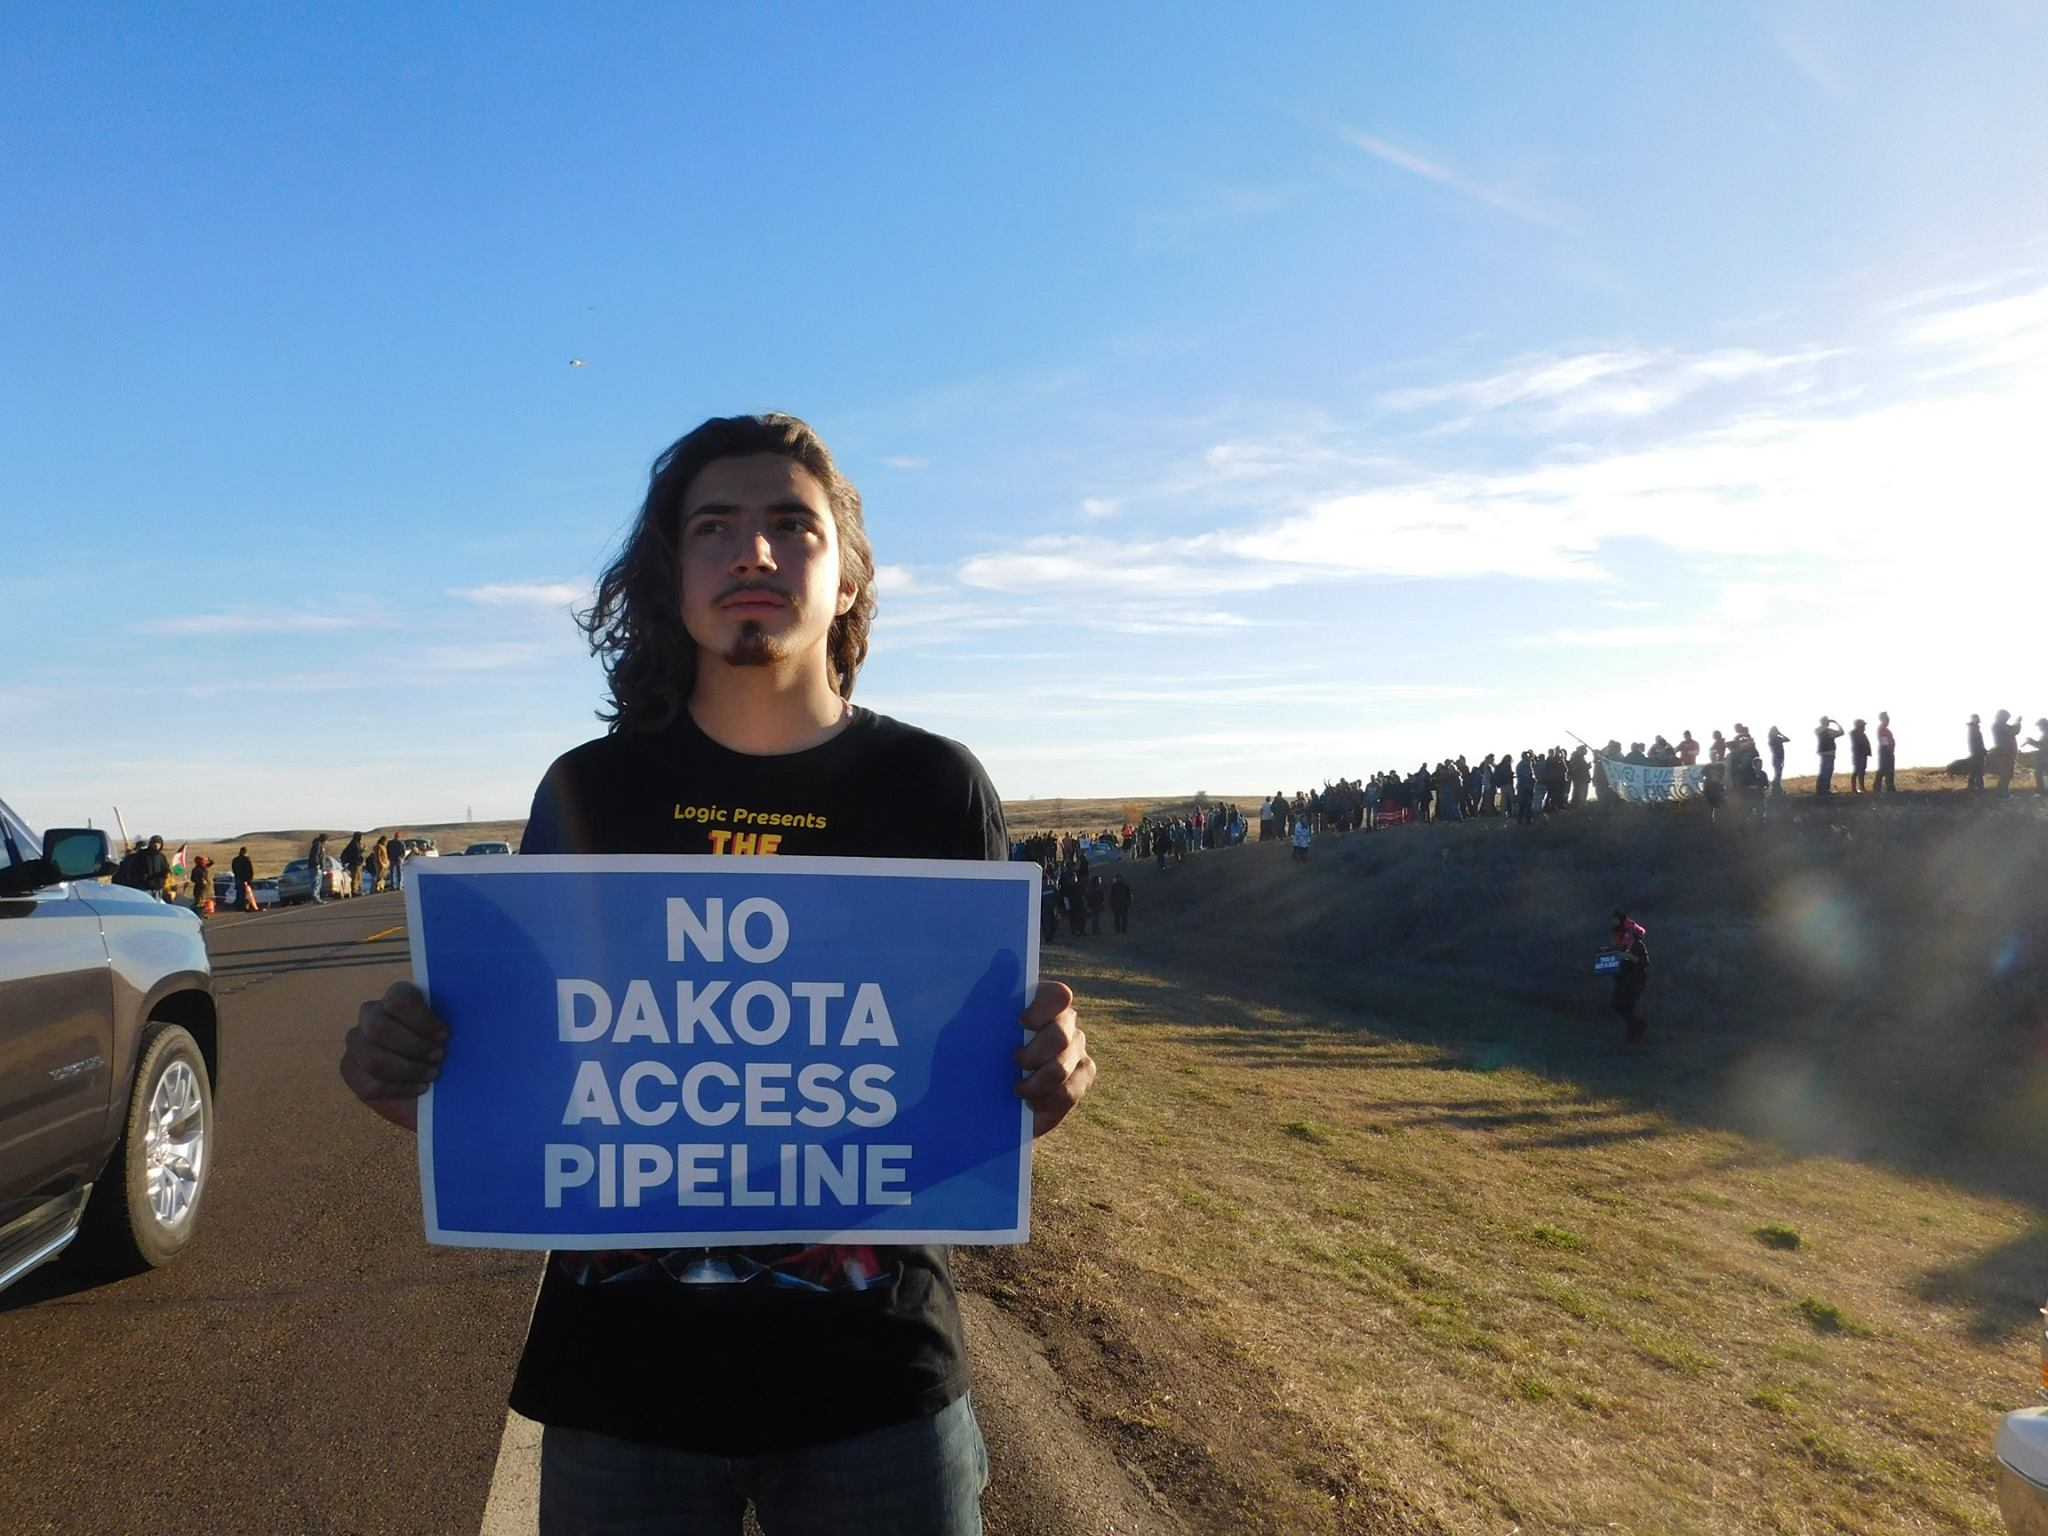 Security firm hired by Dakota Access still won't admit wrongdoing